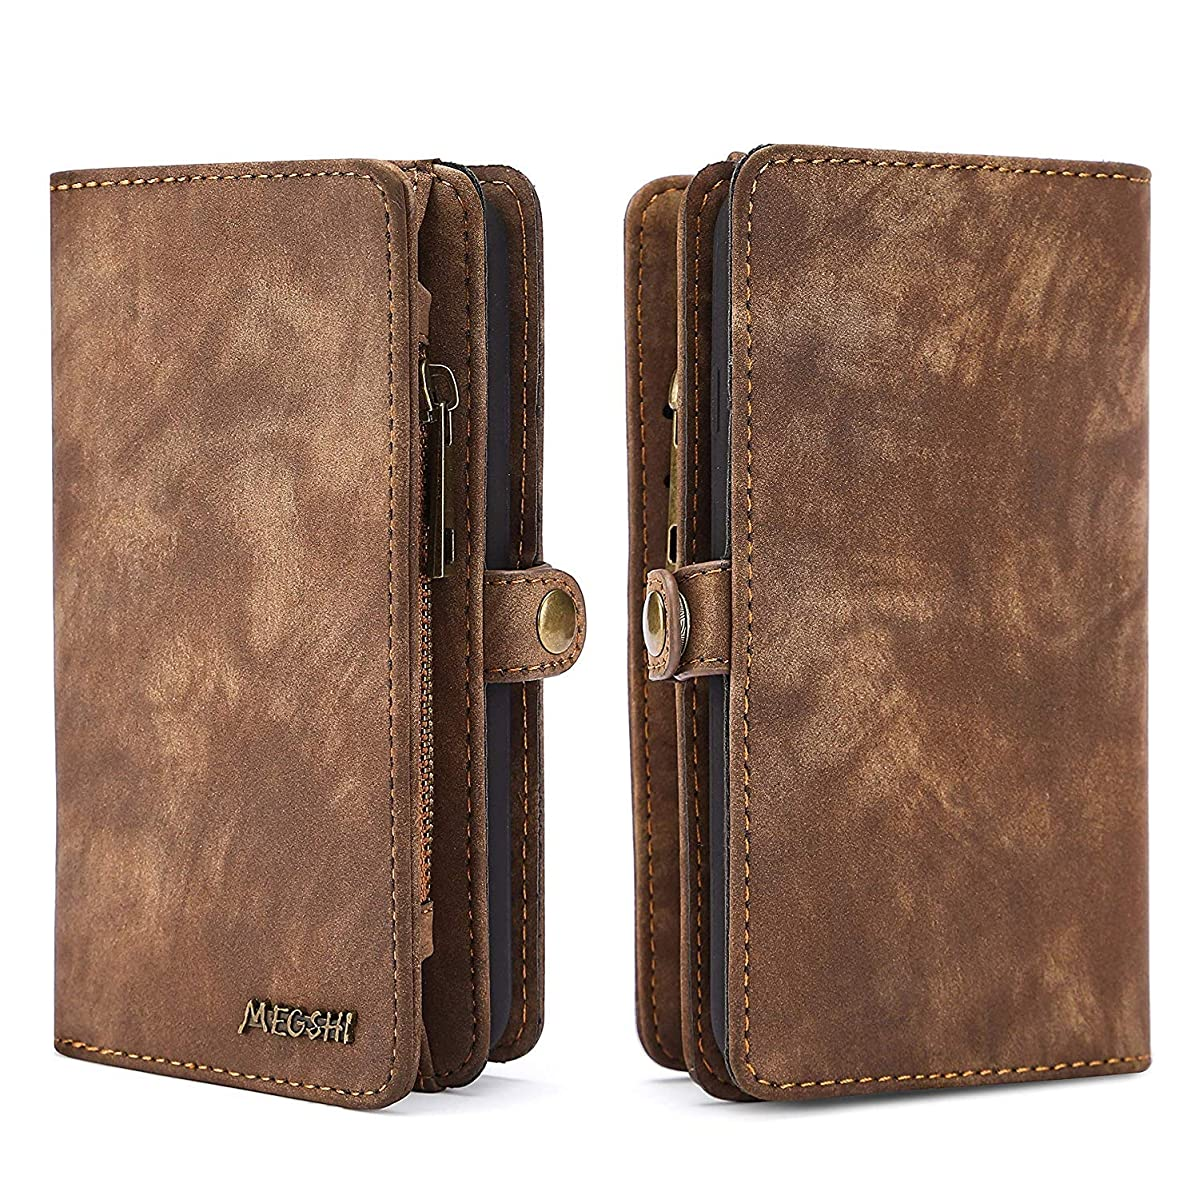 Spritech iPhone 7 Plus Wallet Case,Handmade Leather Large Capacity Detachable [Scratch Resistant] Zipper Wallet Cover with Credit Card Holder for iPhone 7 Plus/iPhone 8 Plus